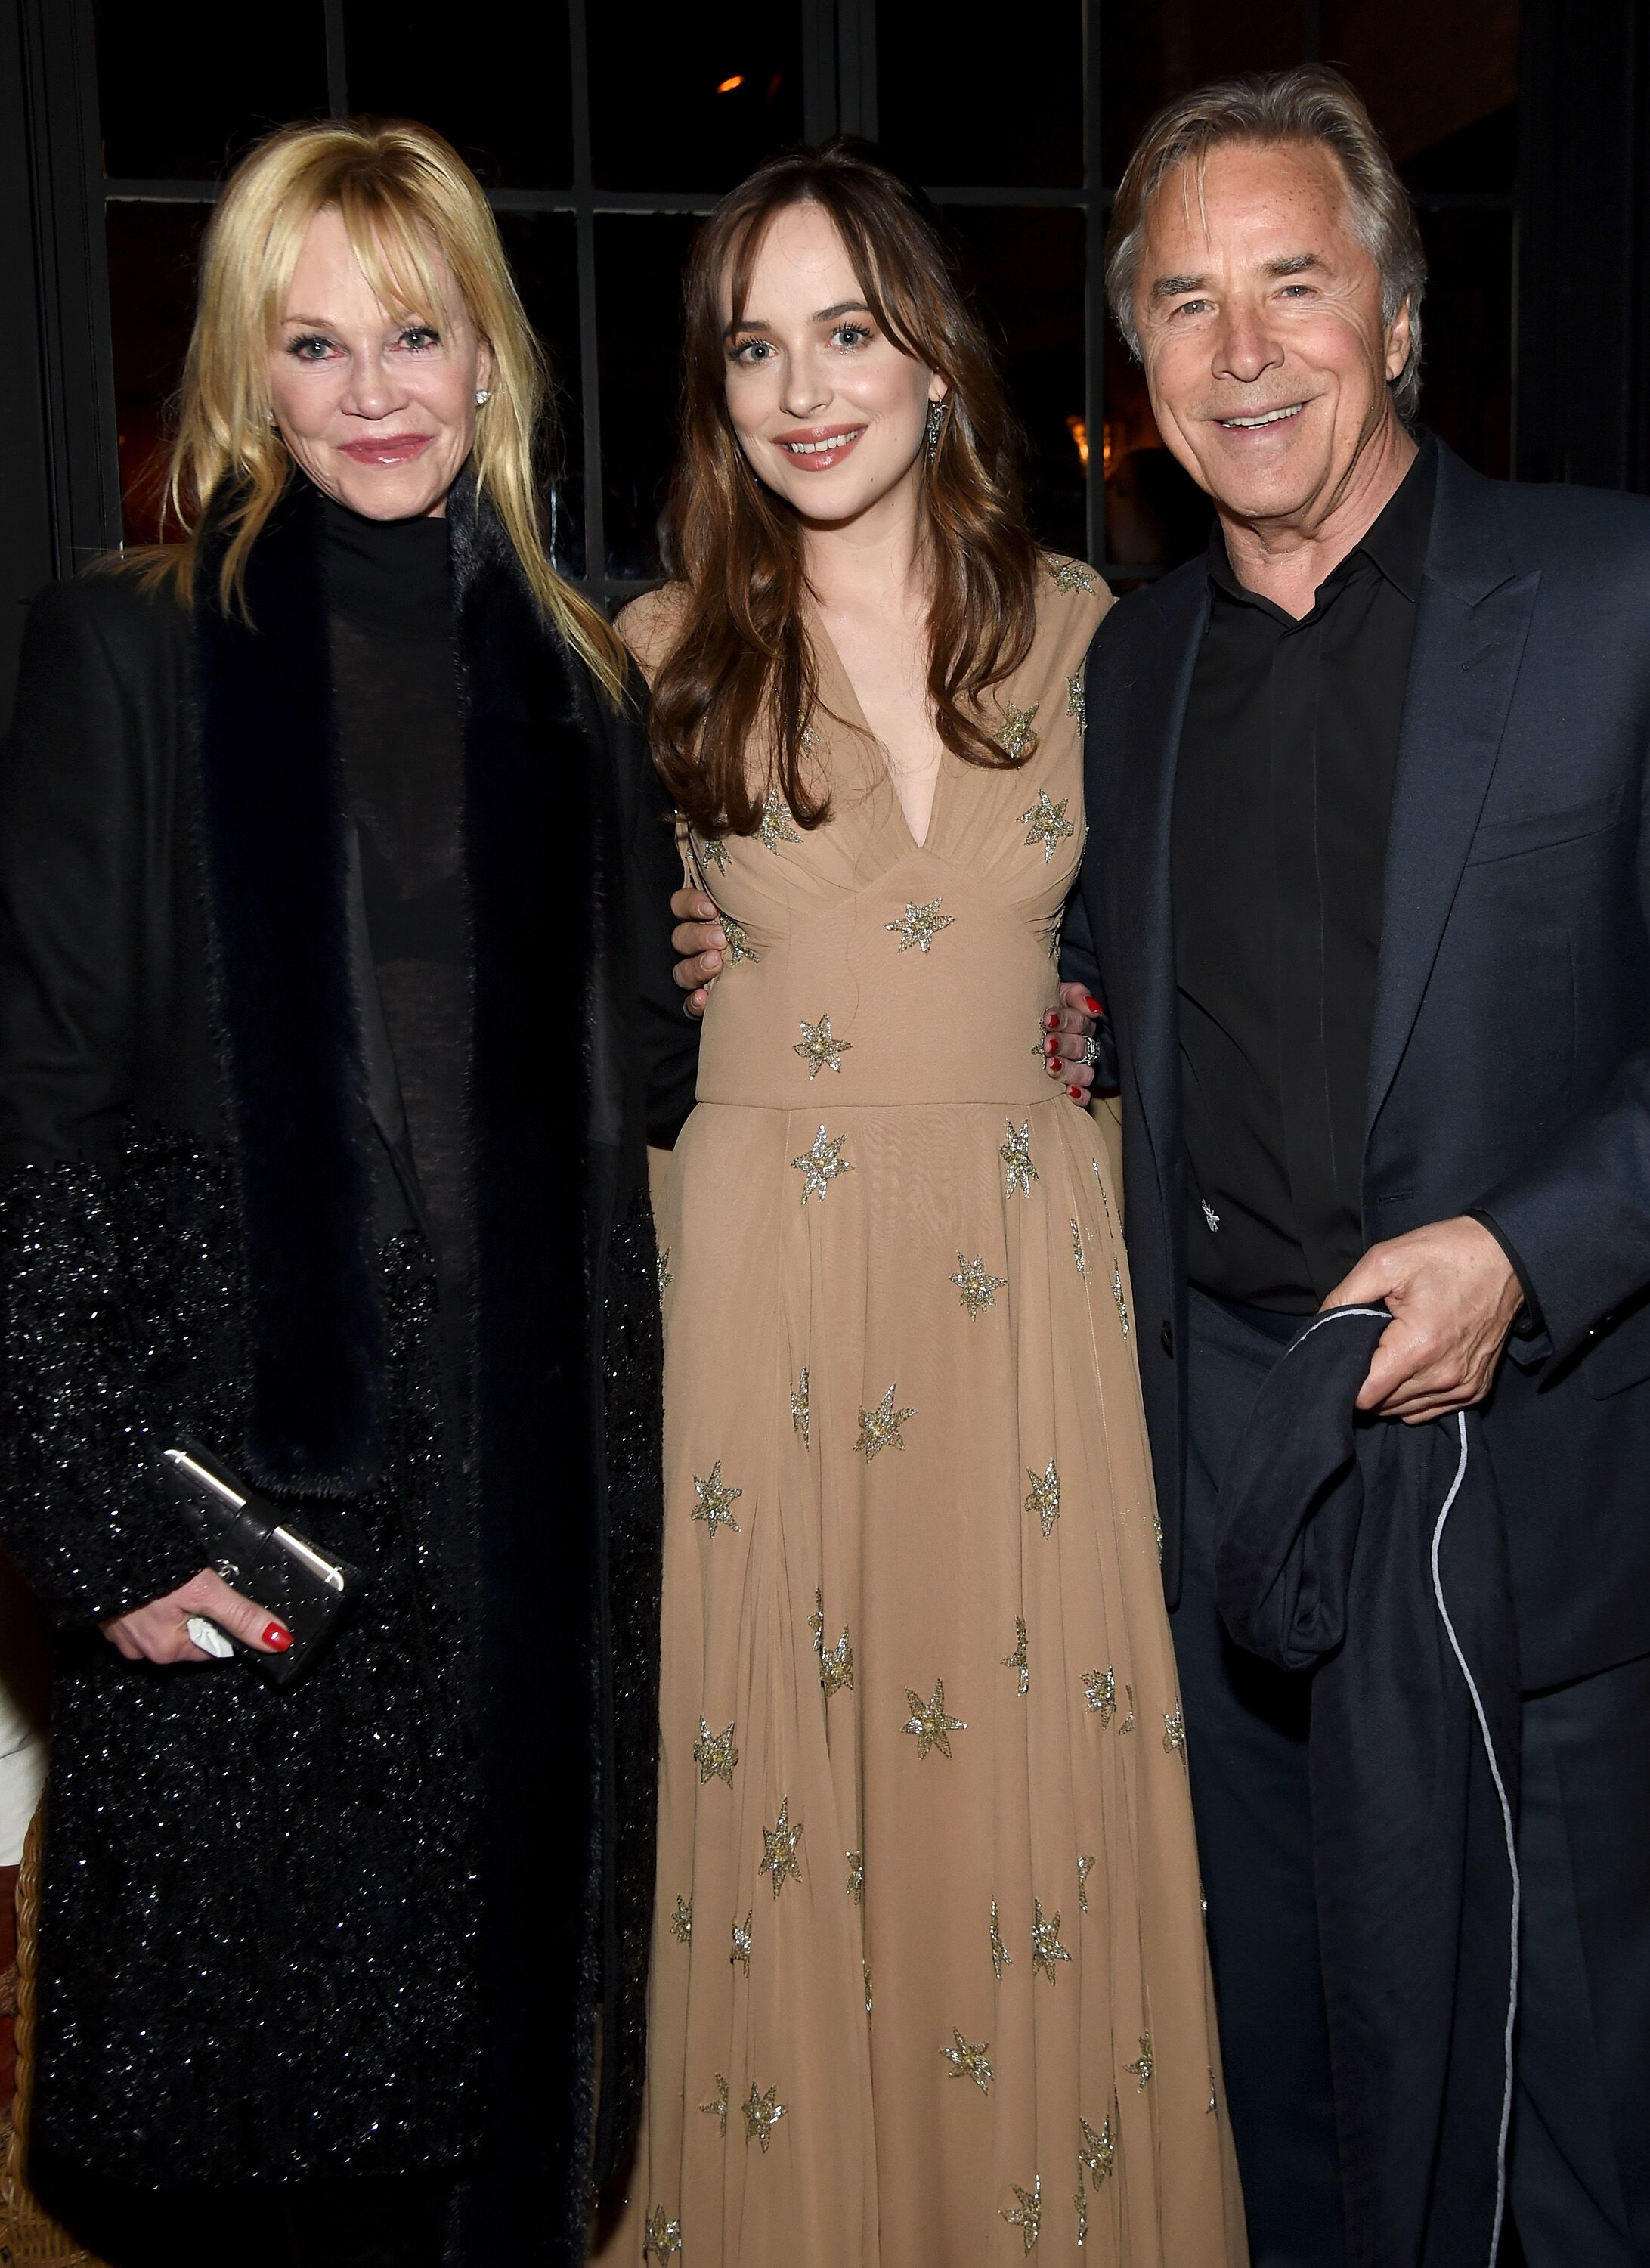 """Melanie Griffith, Dakota Johnson, and Don Johnson attend the after party for the New York premiere of """"How To Be Single."""" 